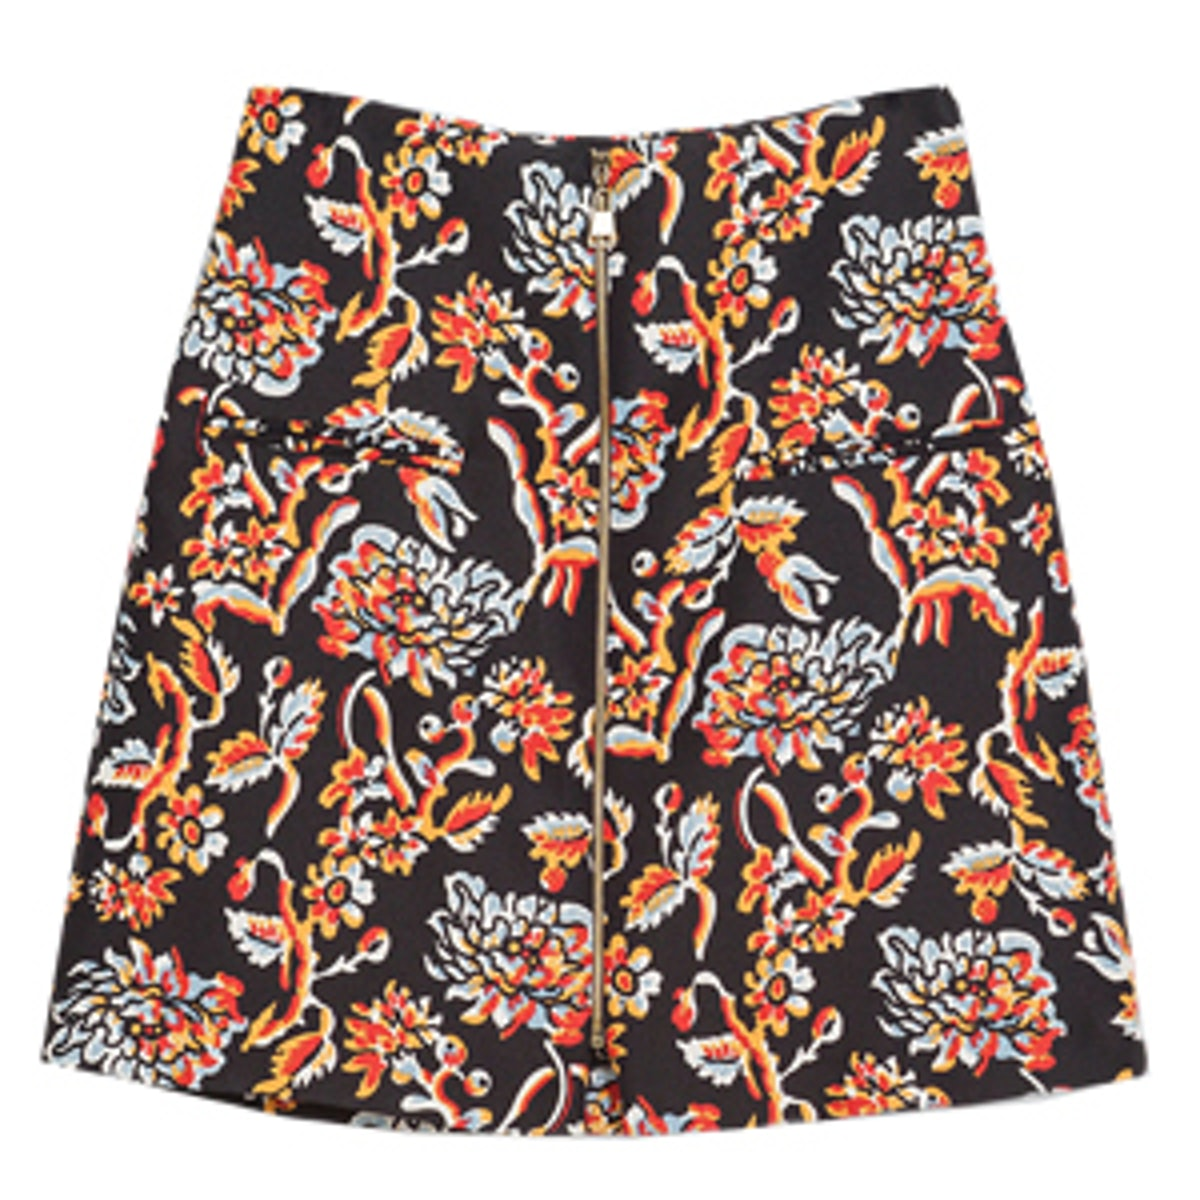 Printed Skirt With A Zip